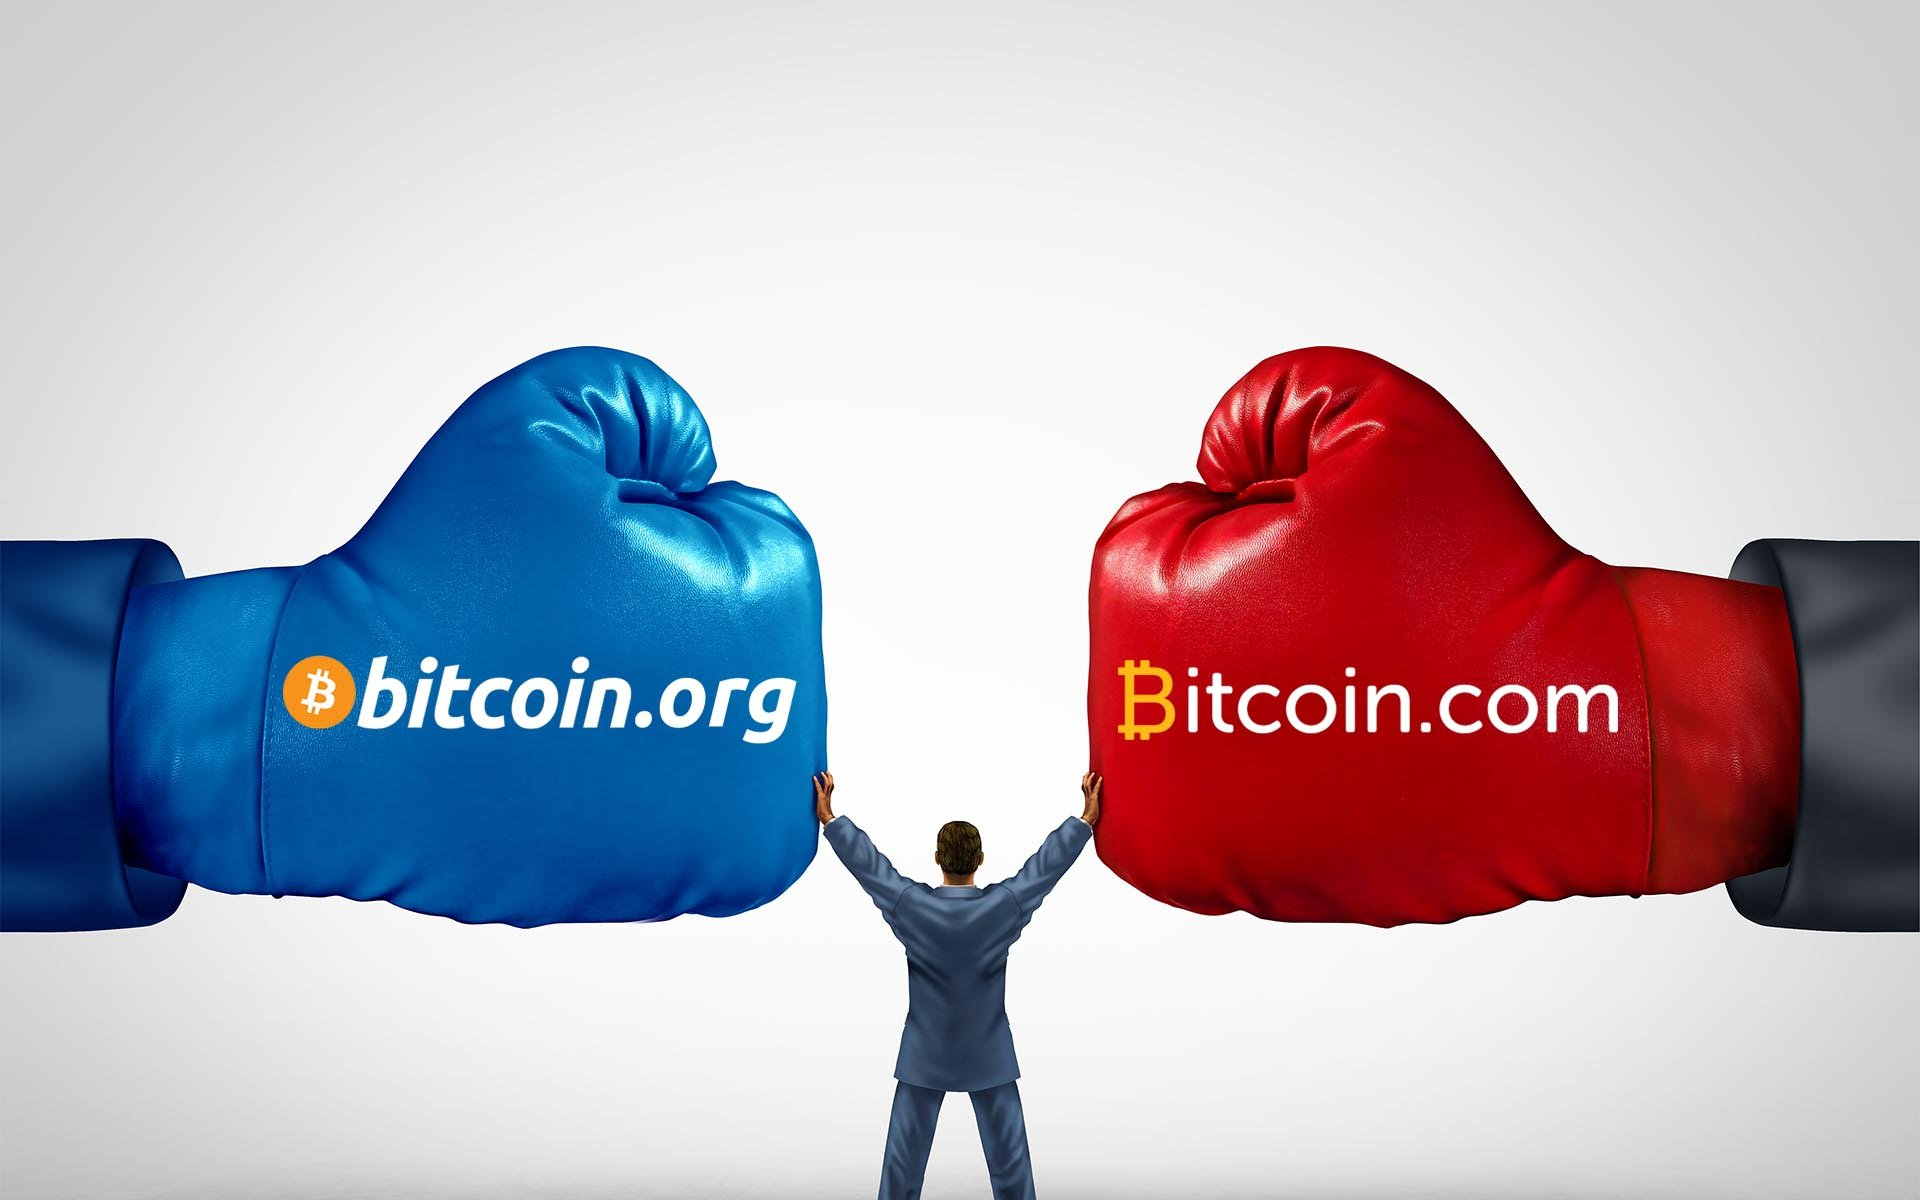 Bitcoin.org Reveals Record 2.3 Million Visitors Despite Bitcoin.com Threat